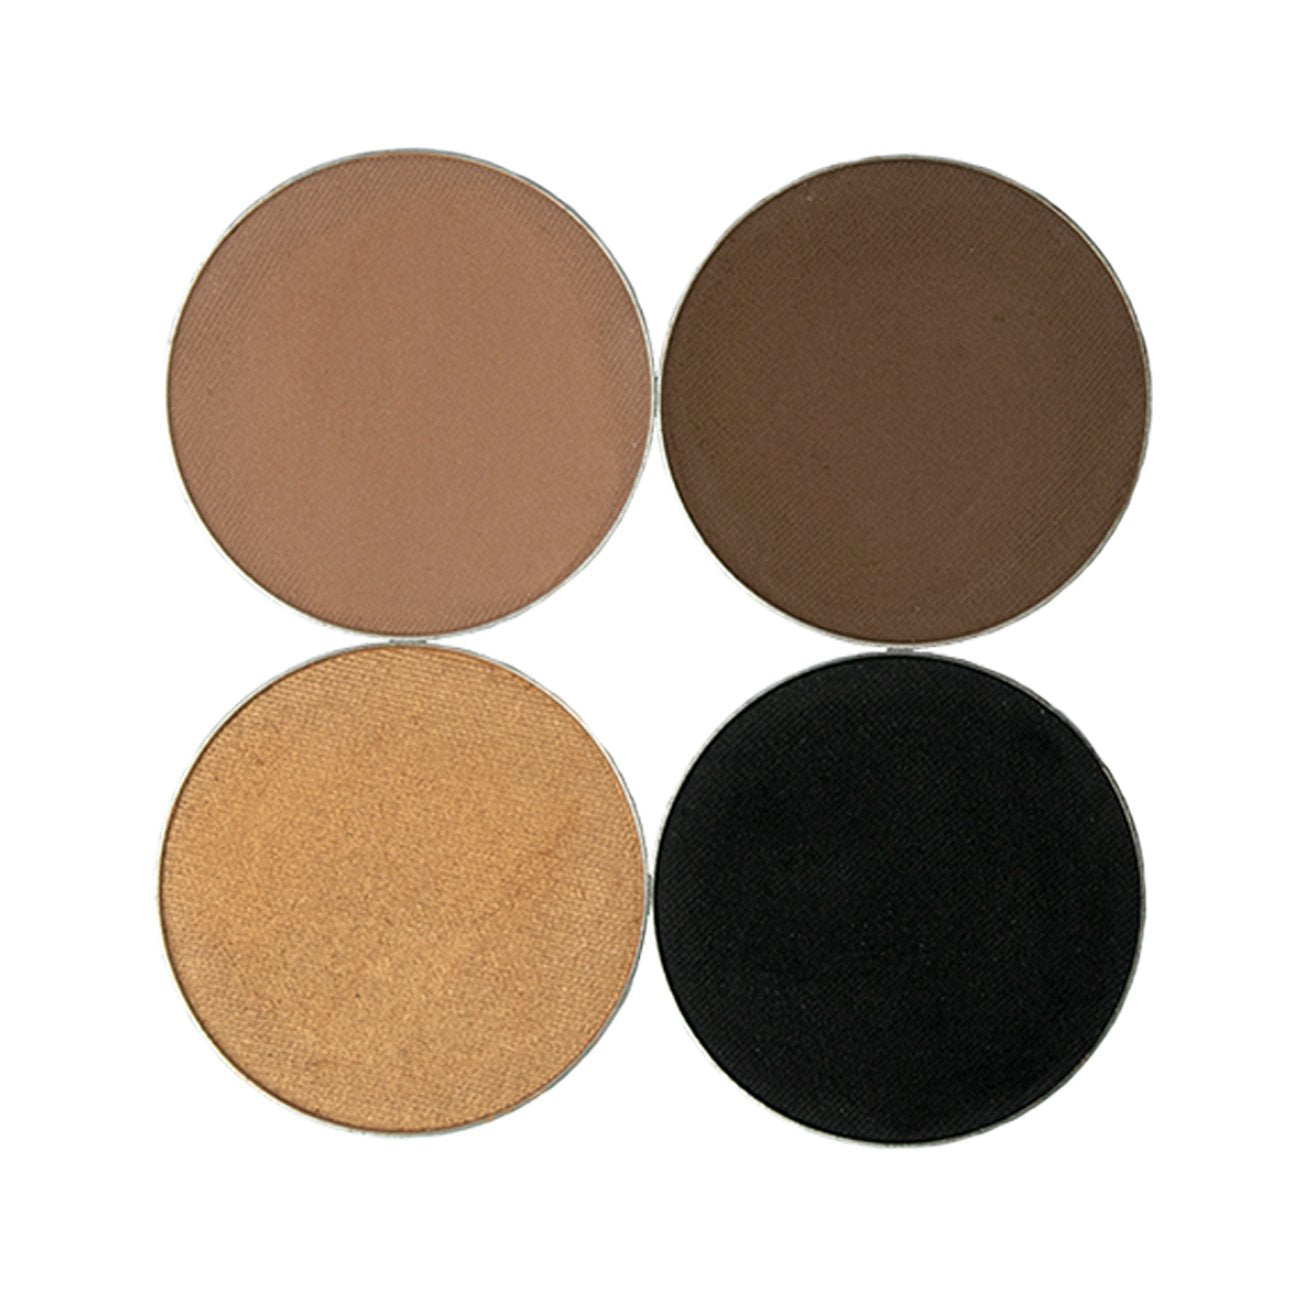 Brown Single Eyeshadows